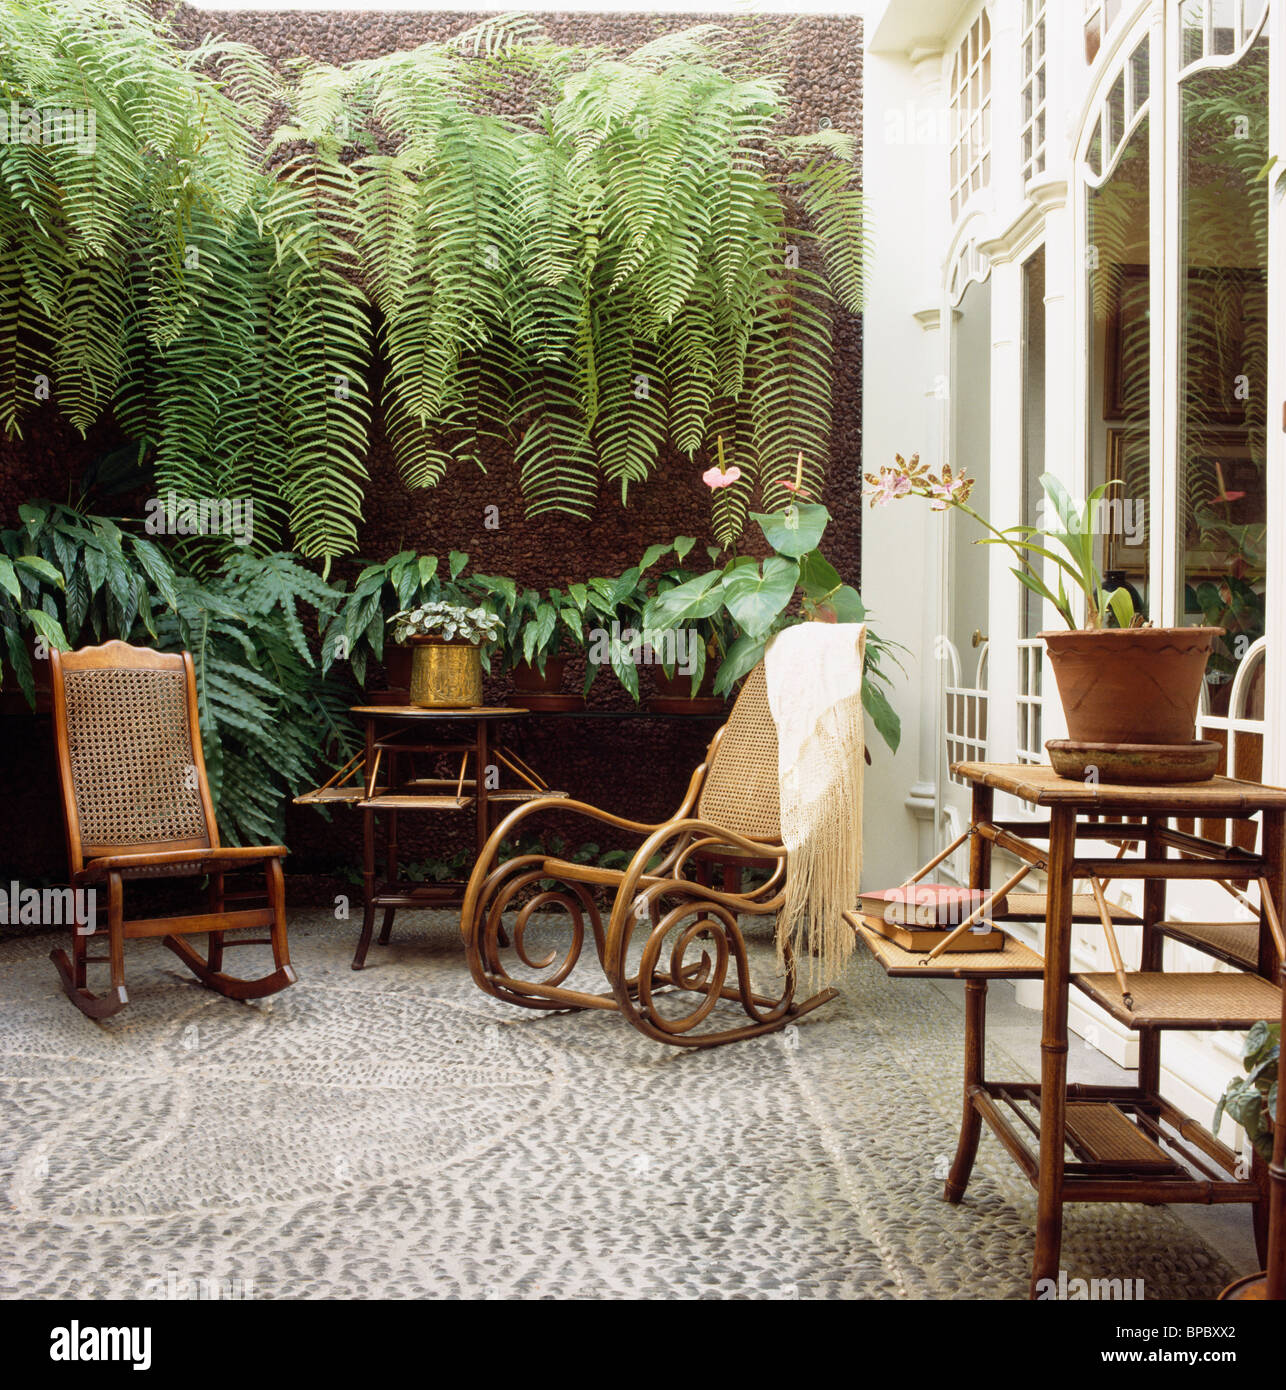 Antique Bentwood rocking chair and planter's chair on small townhouse  courtyard with pebble mosaic paving and lush green ferns - Antique Bentwood Rocking Chair And Planter's Chair On Small Stock